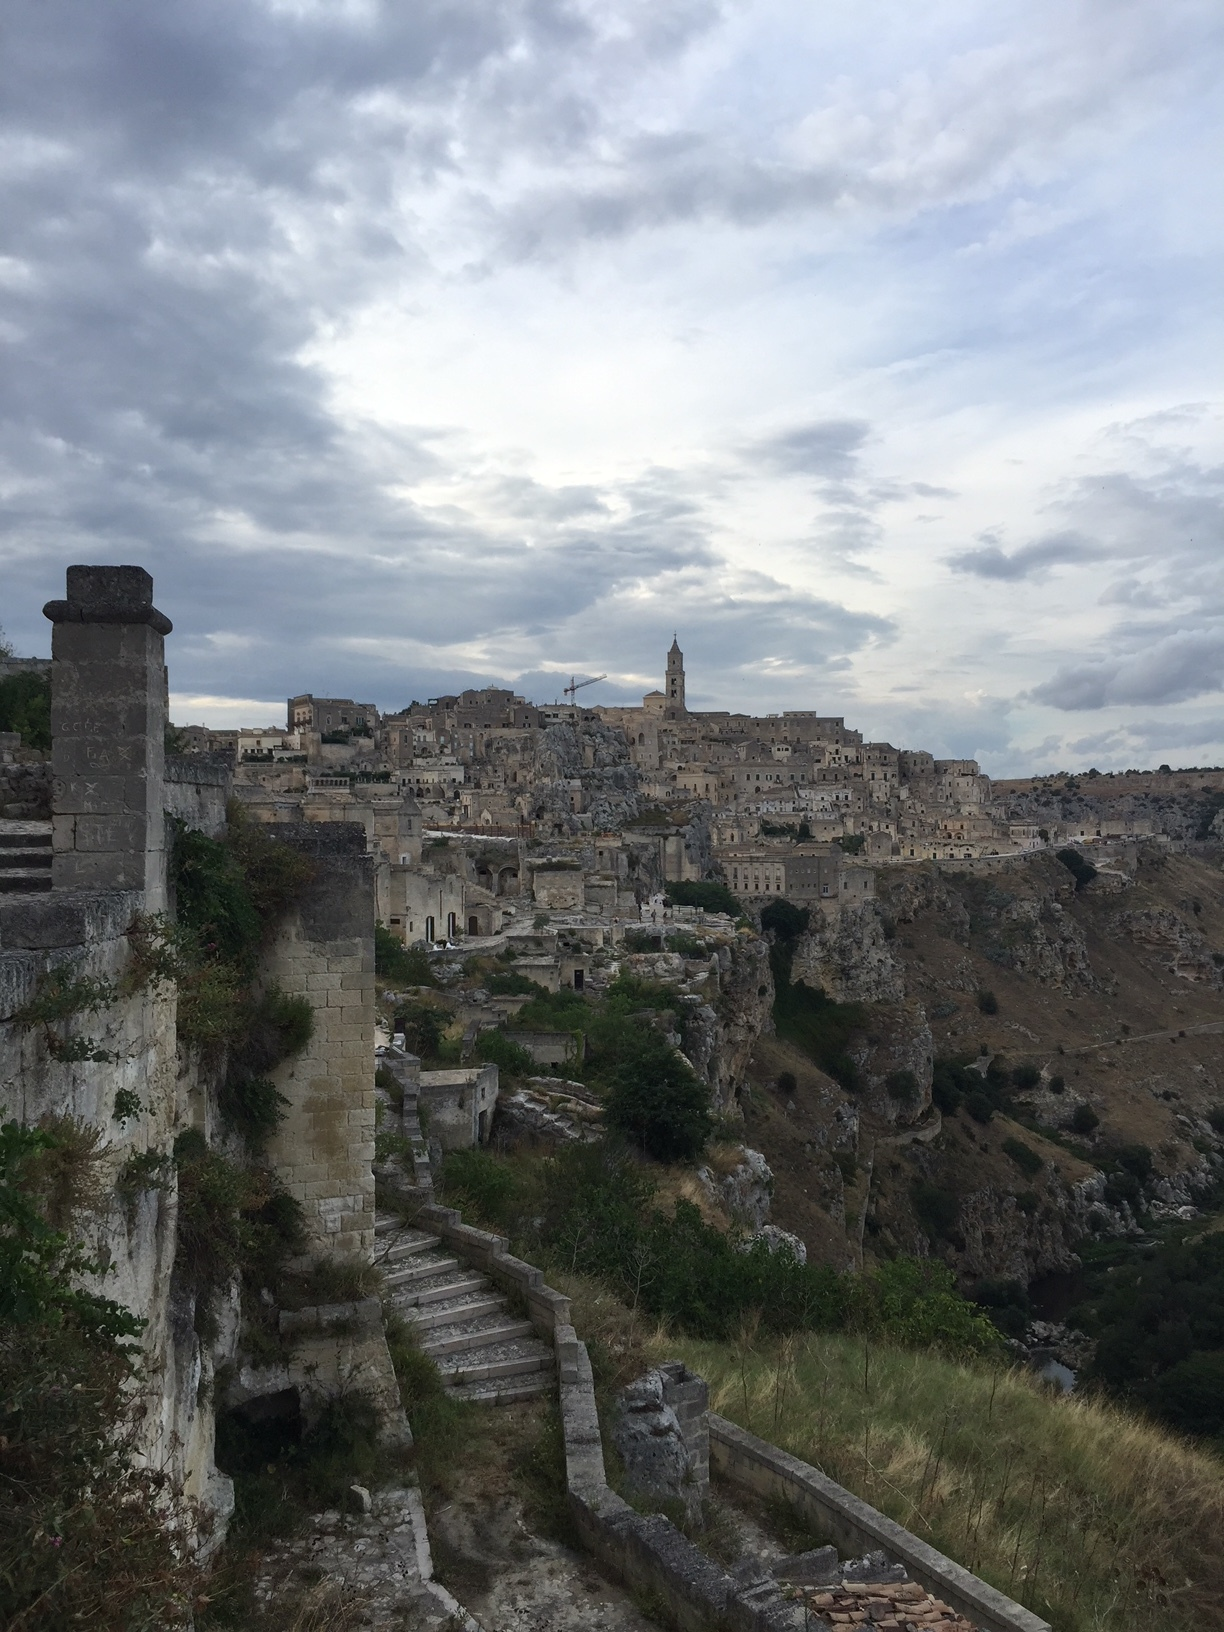 Exploring abandoned caves and scenery in Matera